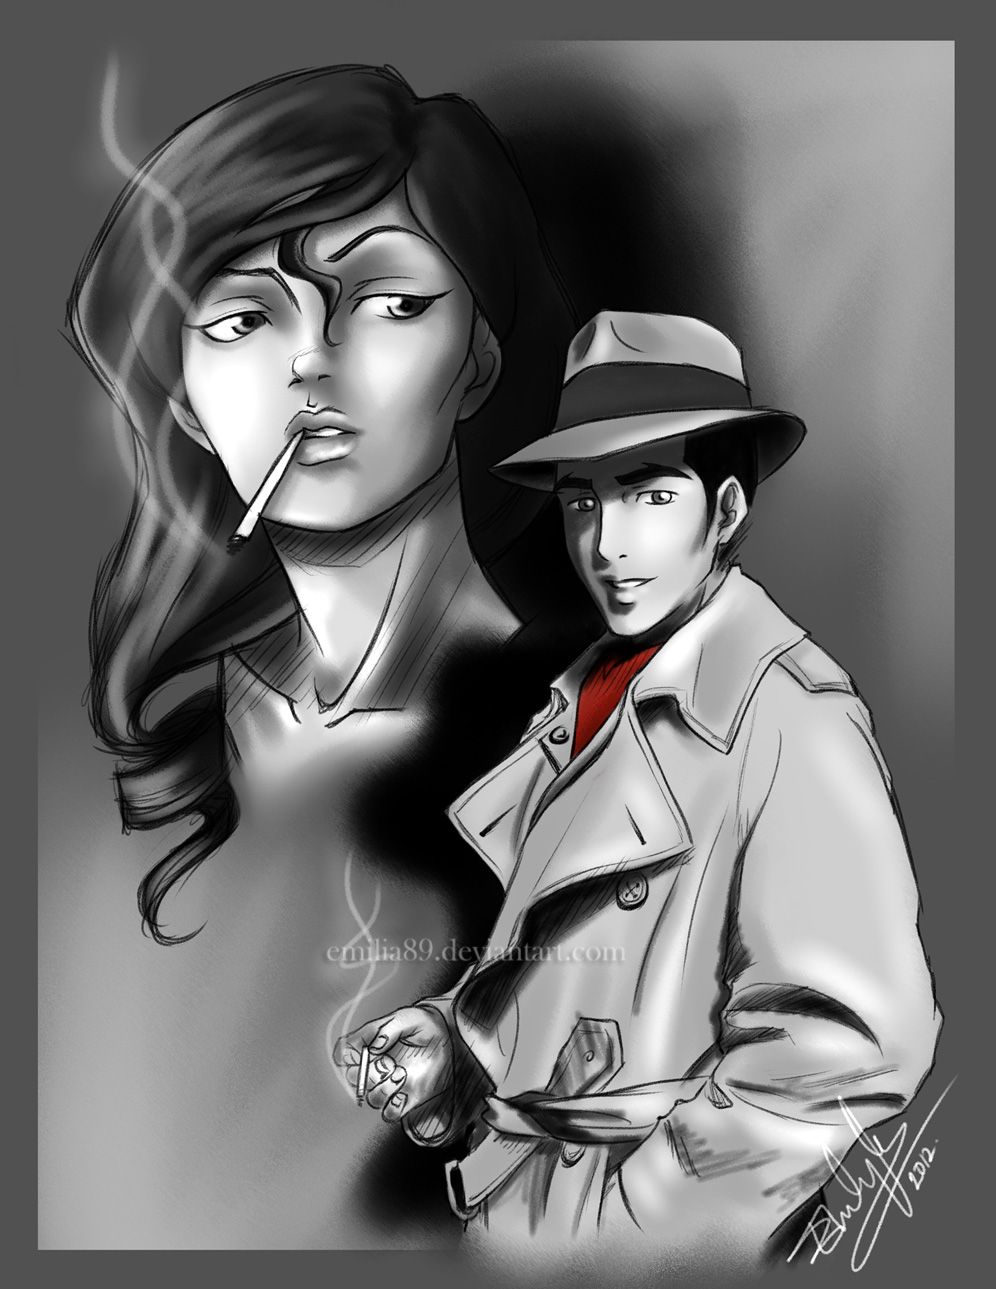 Makorra Week :: Noir by Emilia89